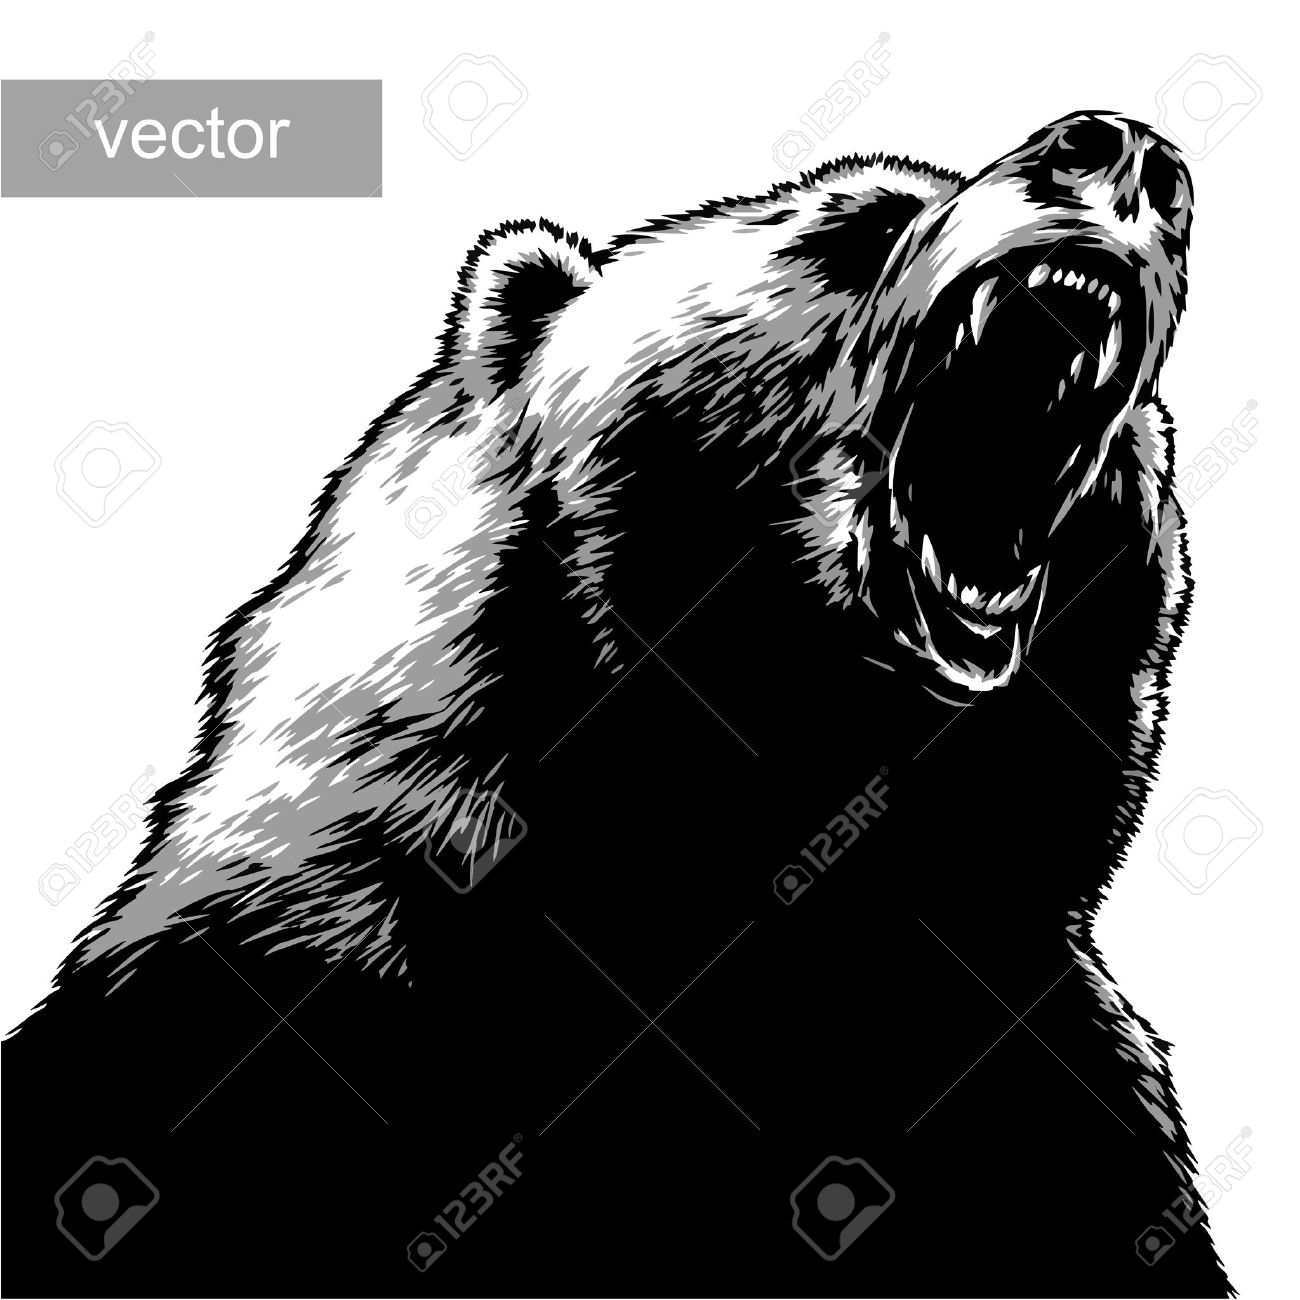 Grizzly Bear Cliparts Stock Vector And Royalty Free Grizzly